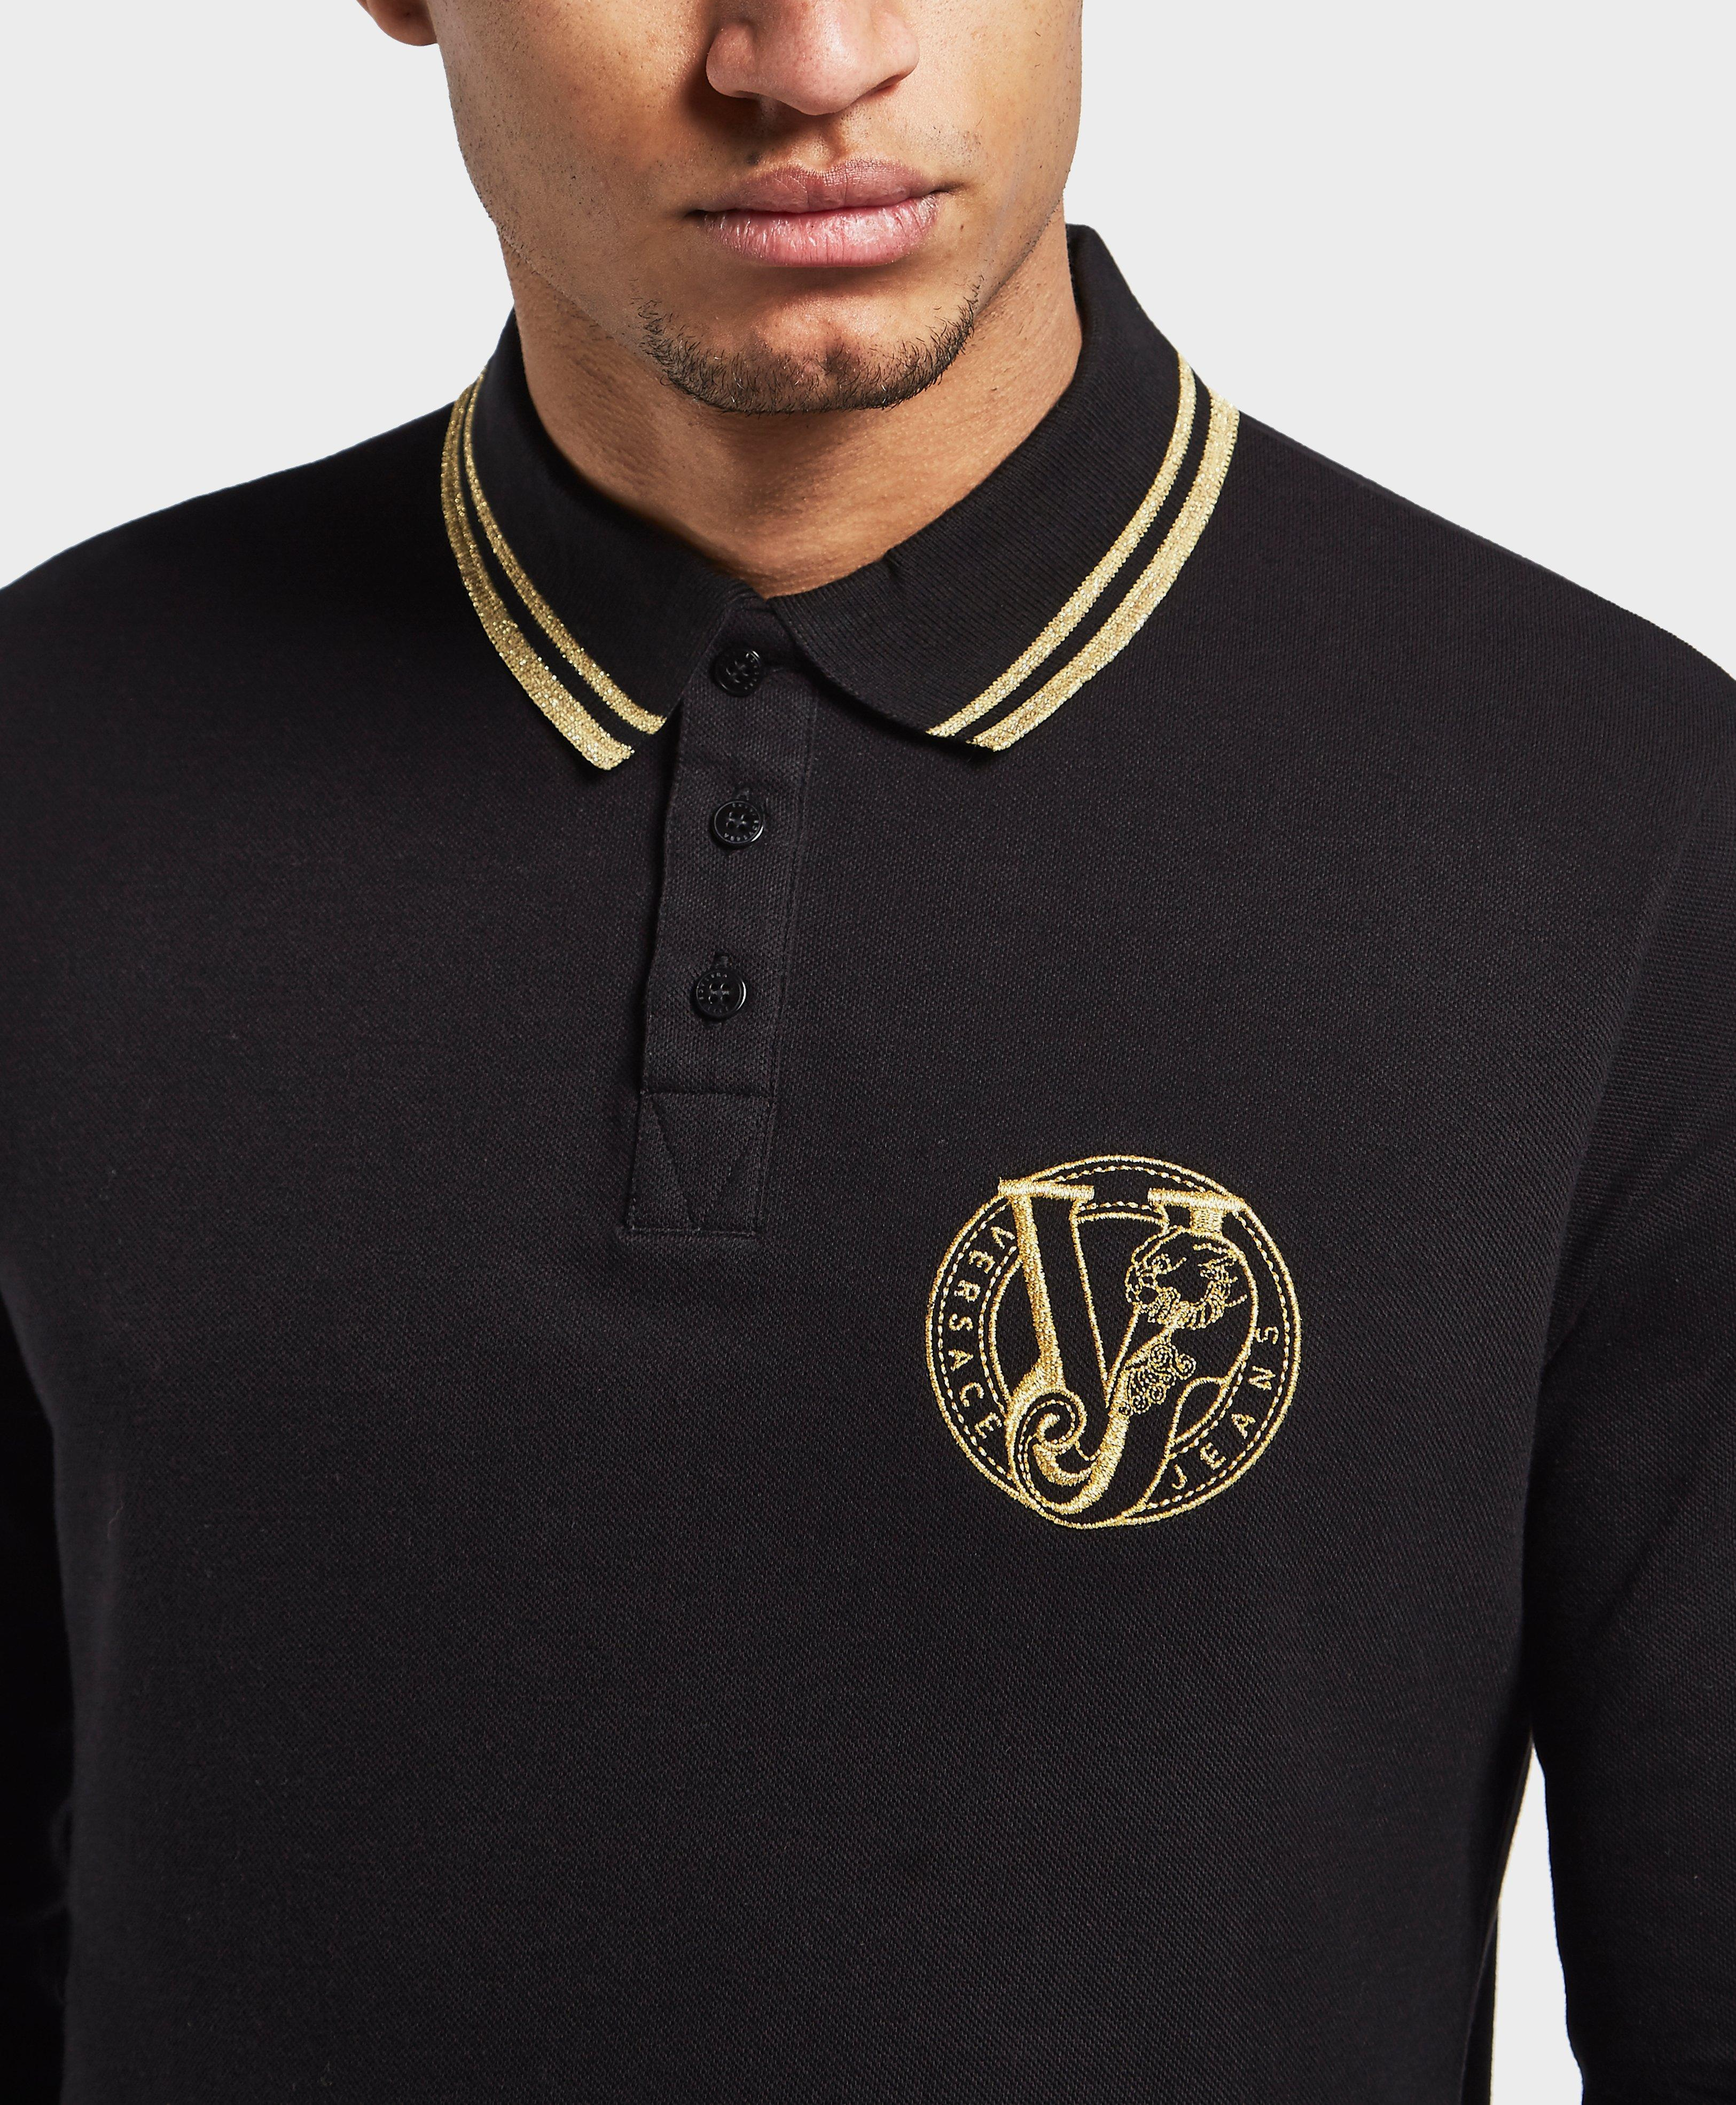 bf77bc821 Versace Jeans Tipped Polo T Shirt Black - raveitsafe